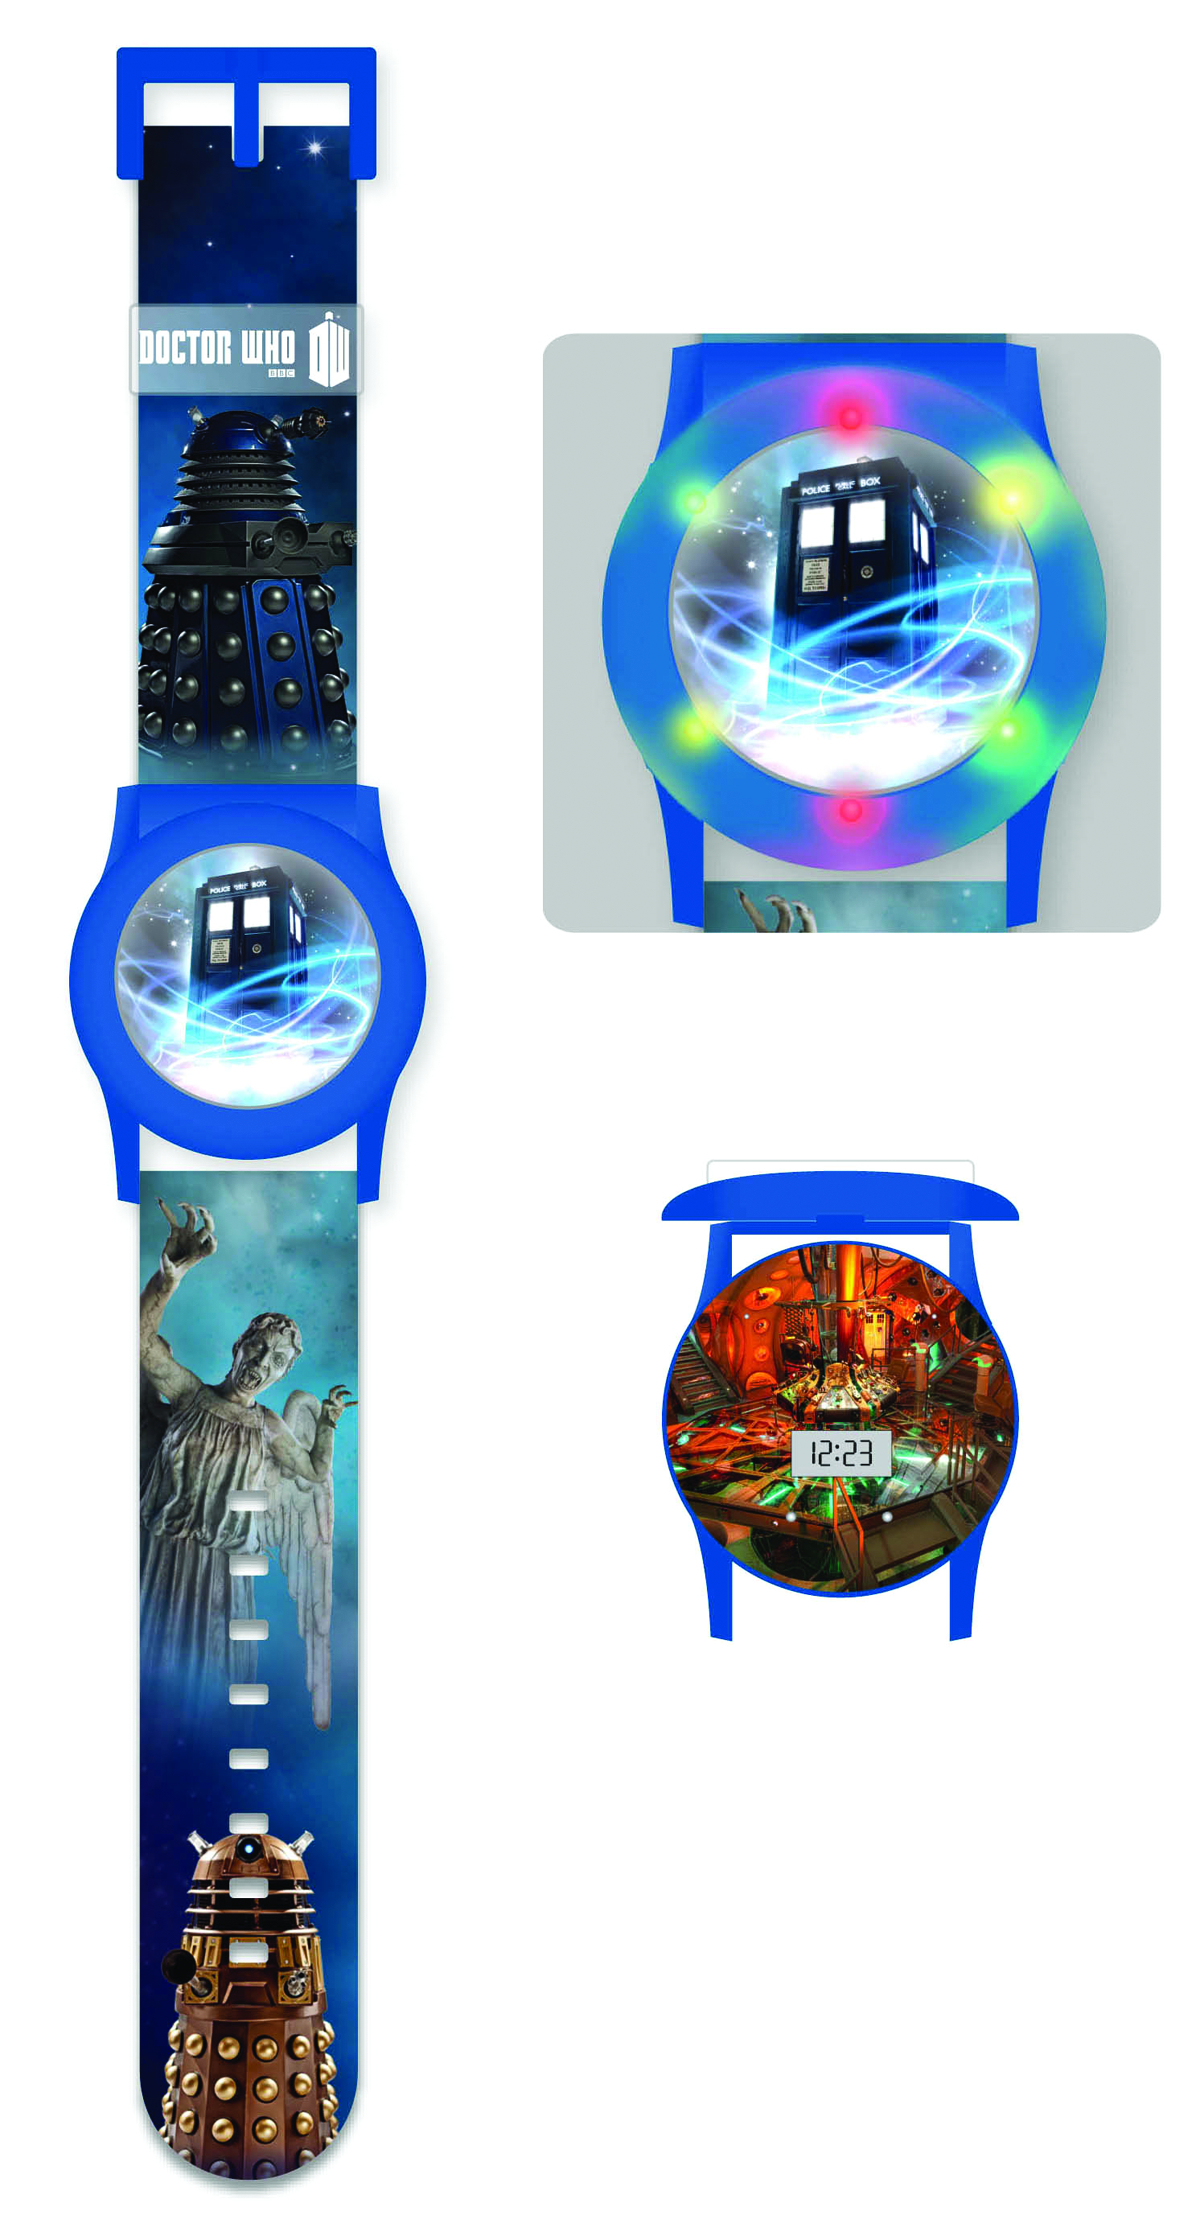 DOCTOR WHO FLASHING LCD WATCH